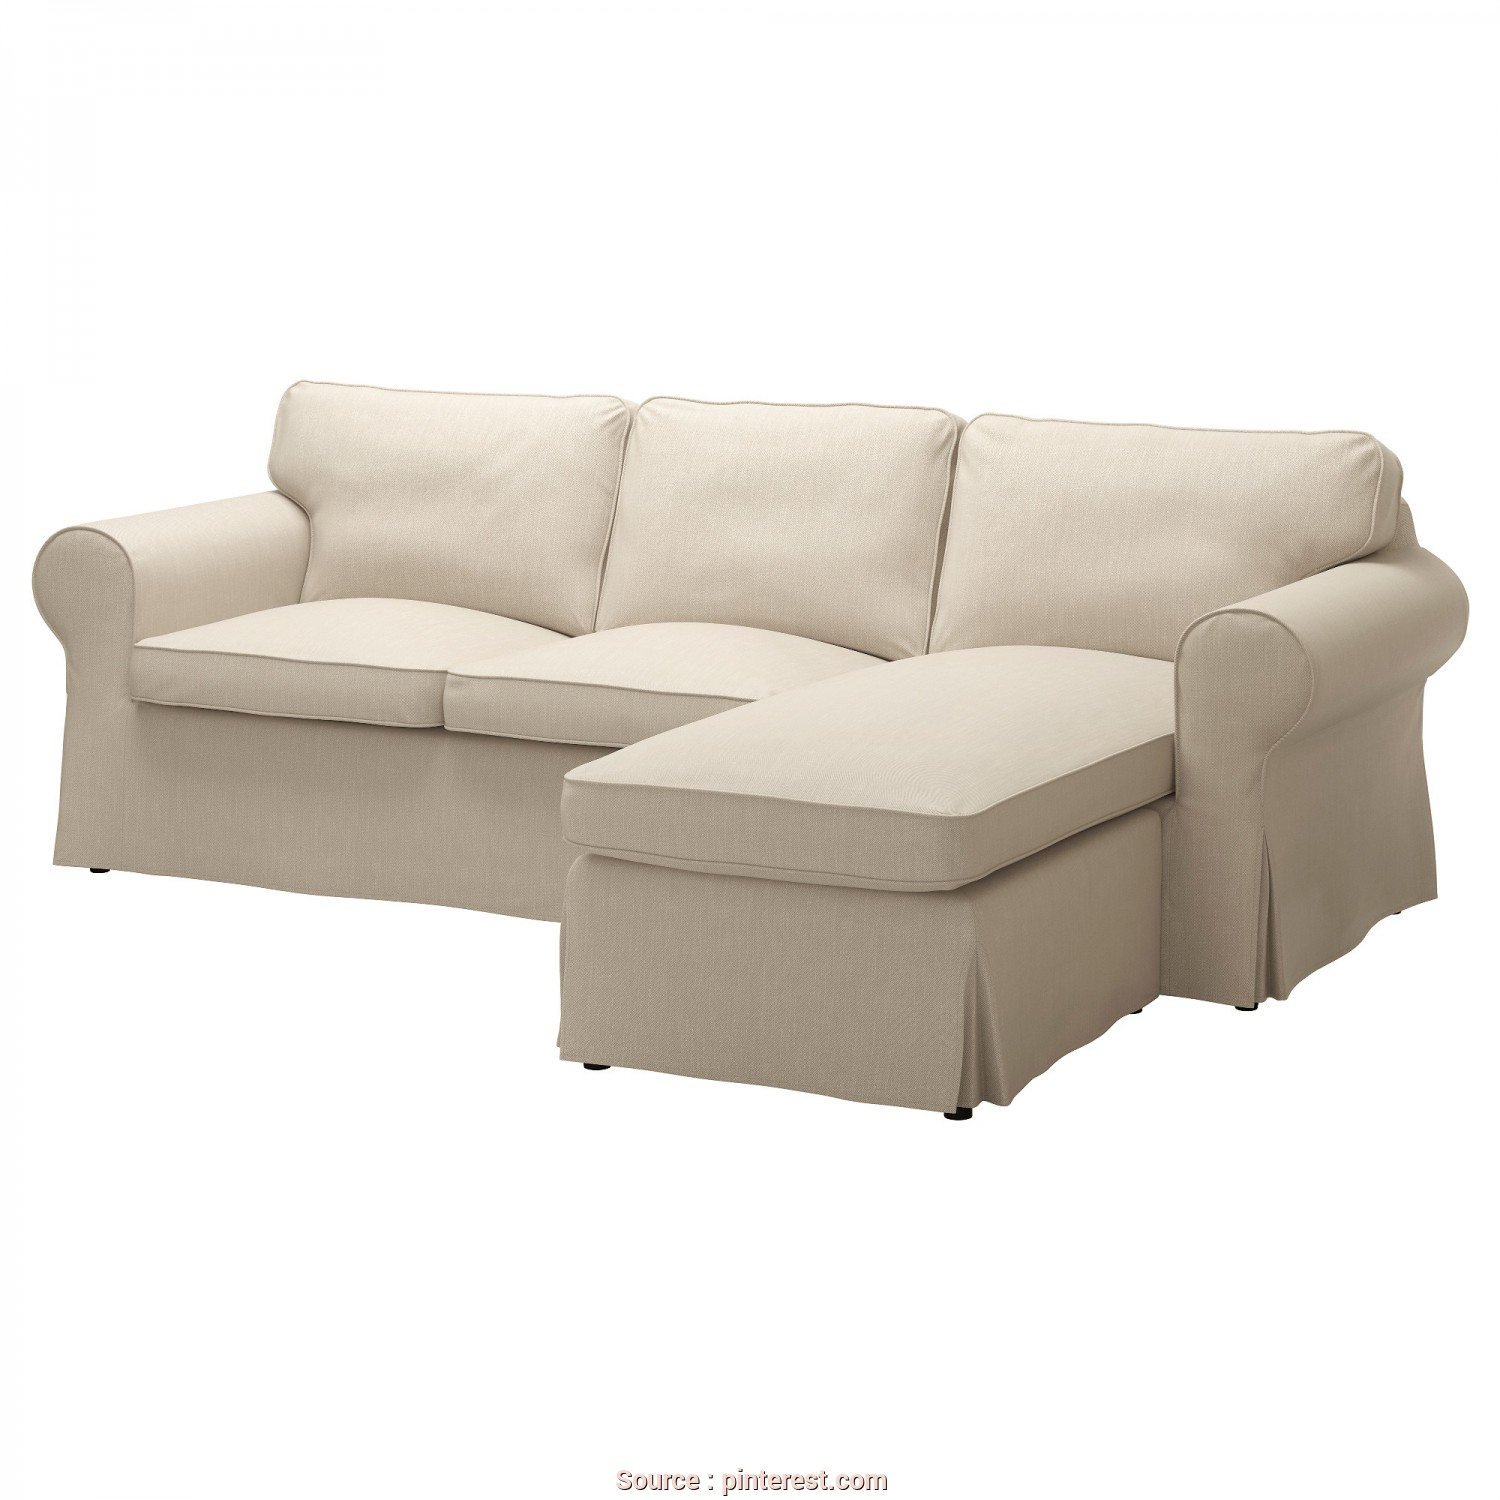 Ikea Cuscino Ektorp, Eccellente Awesome Sofa Depth , Best Sofa Depth 78, Your Sofas, Couches Ideas With Sofa